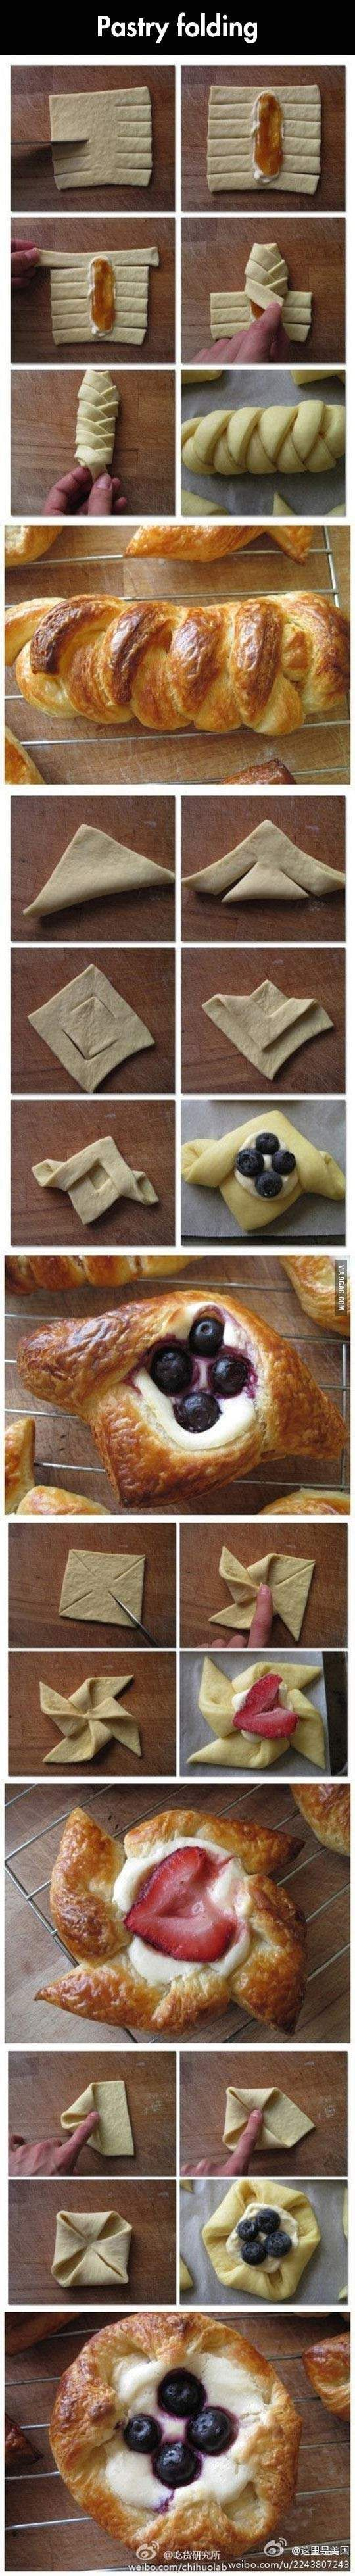 Pastry Folding http://sulia.com/my_thoughts/3f9f90d0-ec7f-41e5-9471-654d9e7be9b0/?source=pin&action=share&btn=big&form_factor=desktop&sharer_id=0&is_sharer_author=false